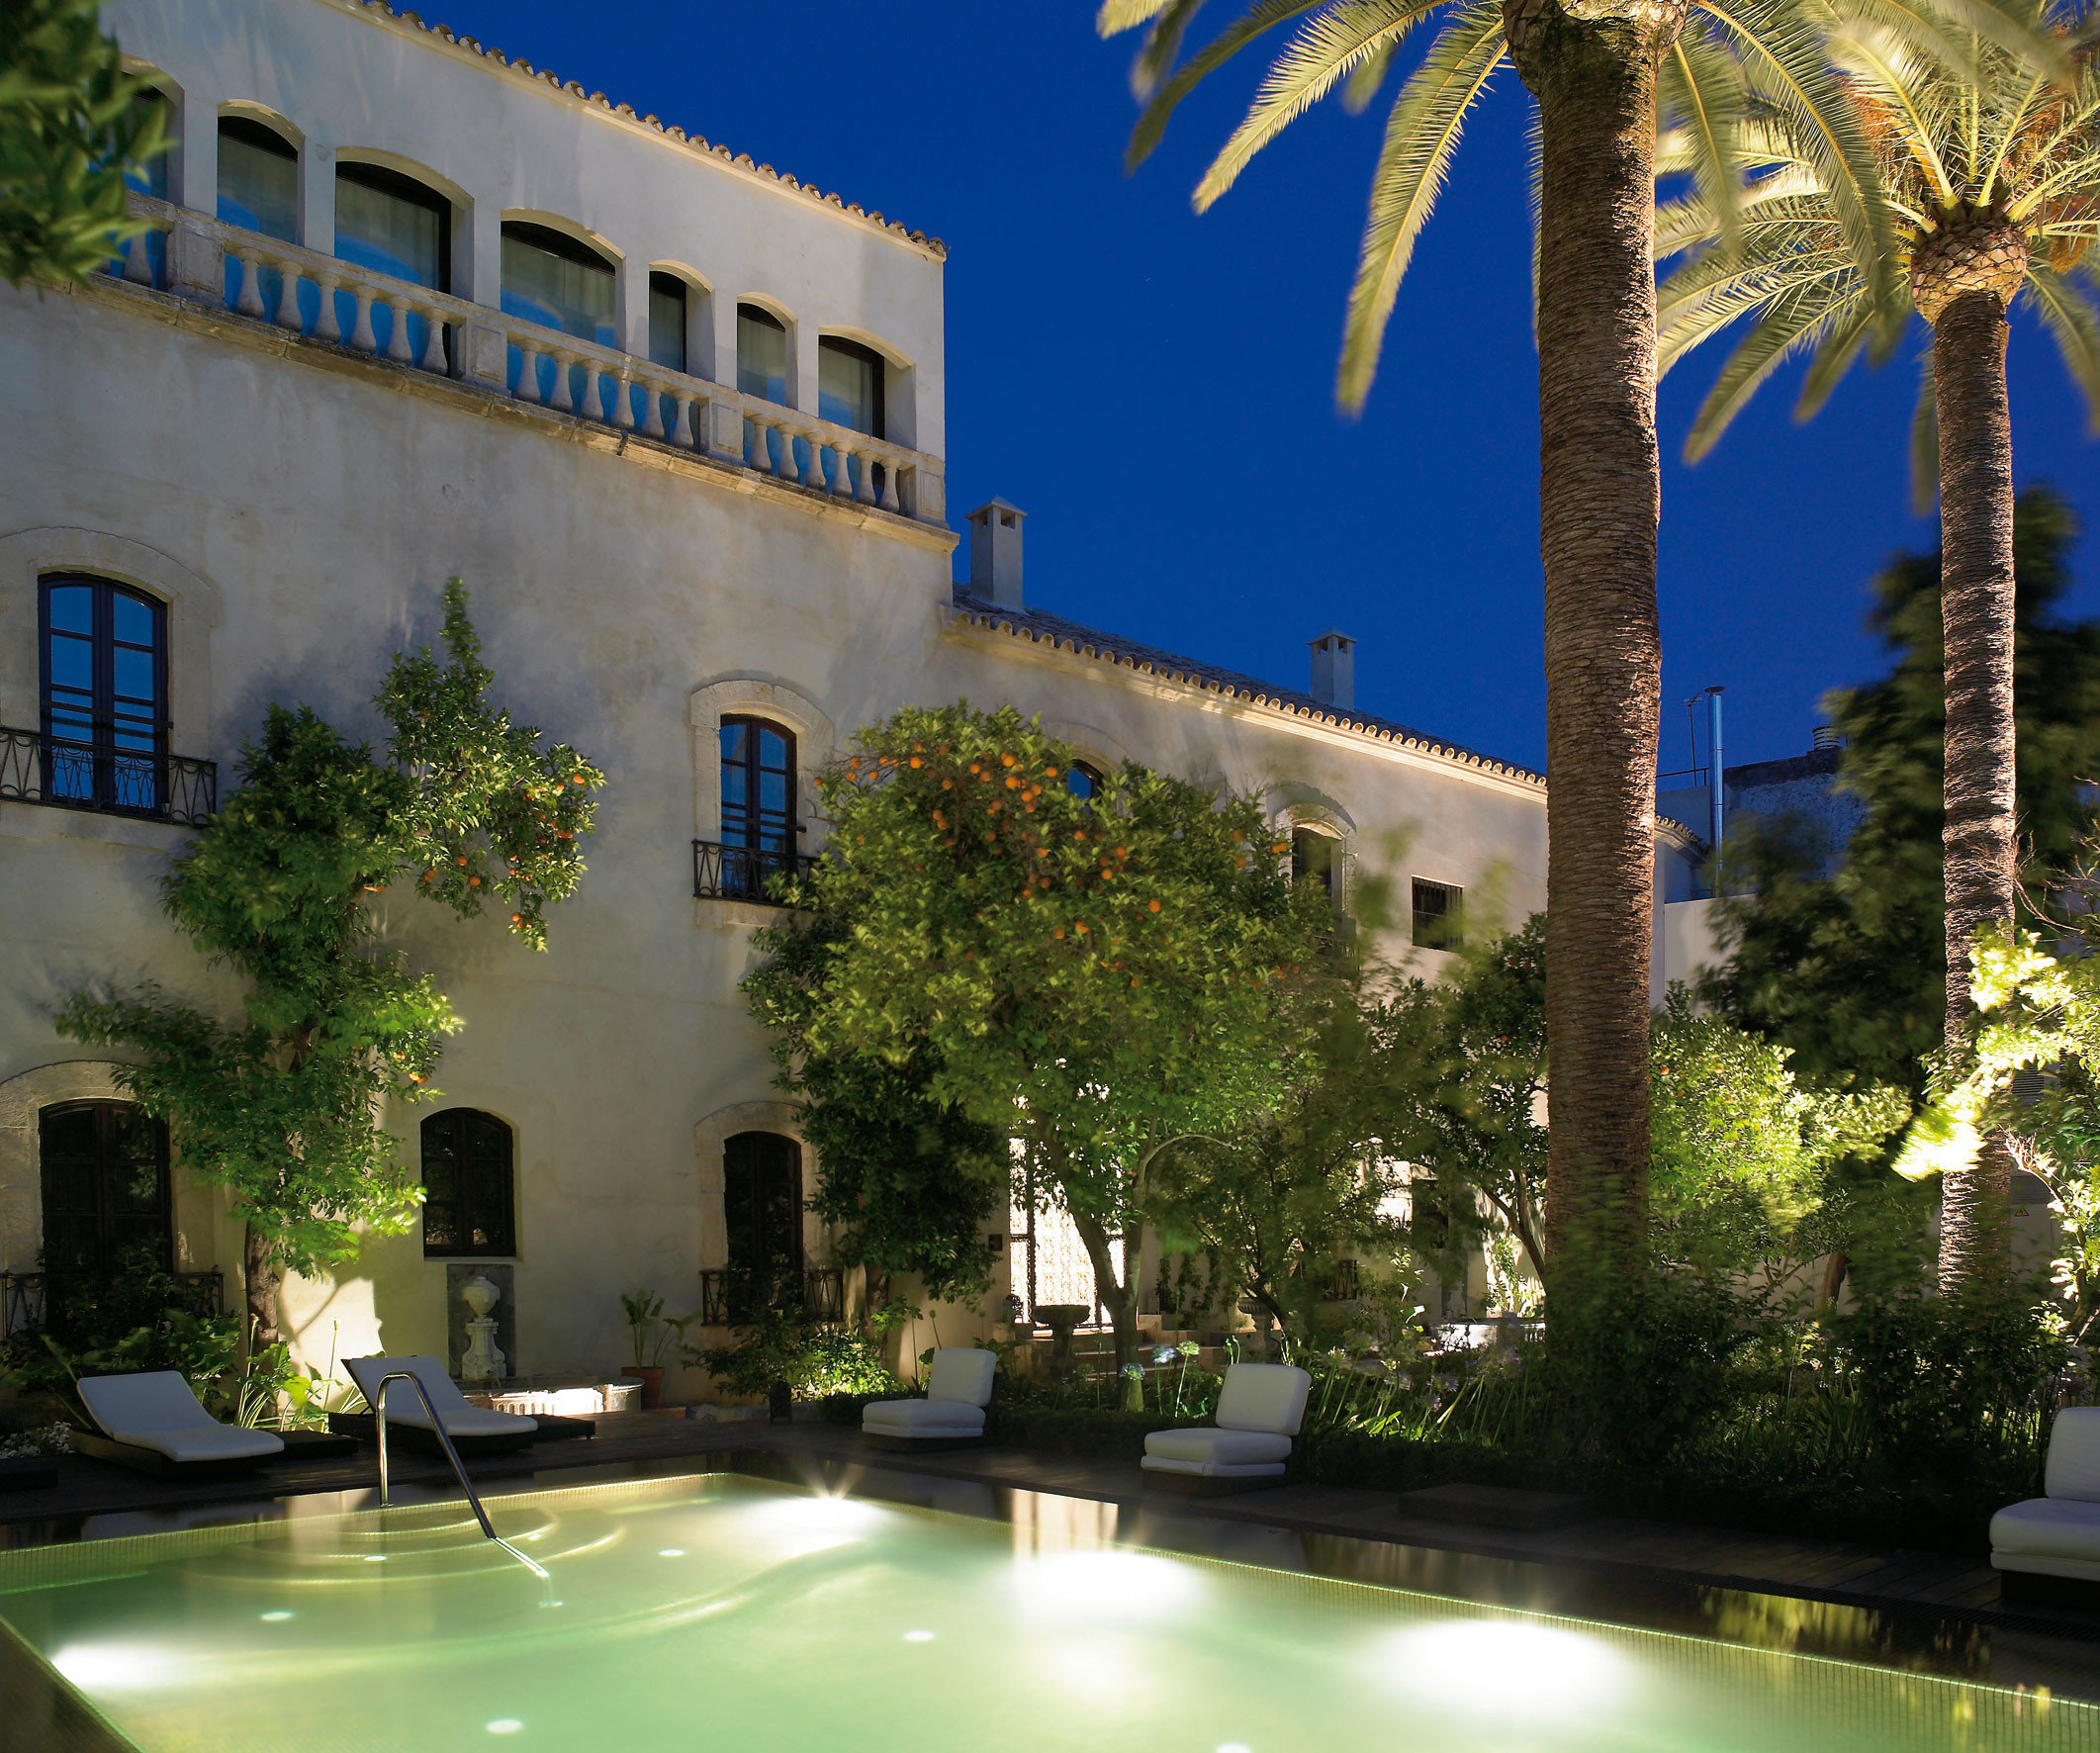 Boutique Buildings Exterior Grounds Historic Luxury Pool tree property building condominium Architecture plaza Courtyard arecales swimming pool Villa mansion Resort